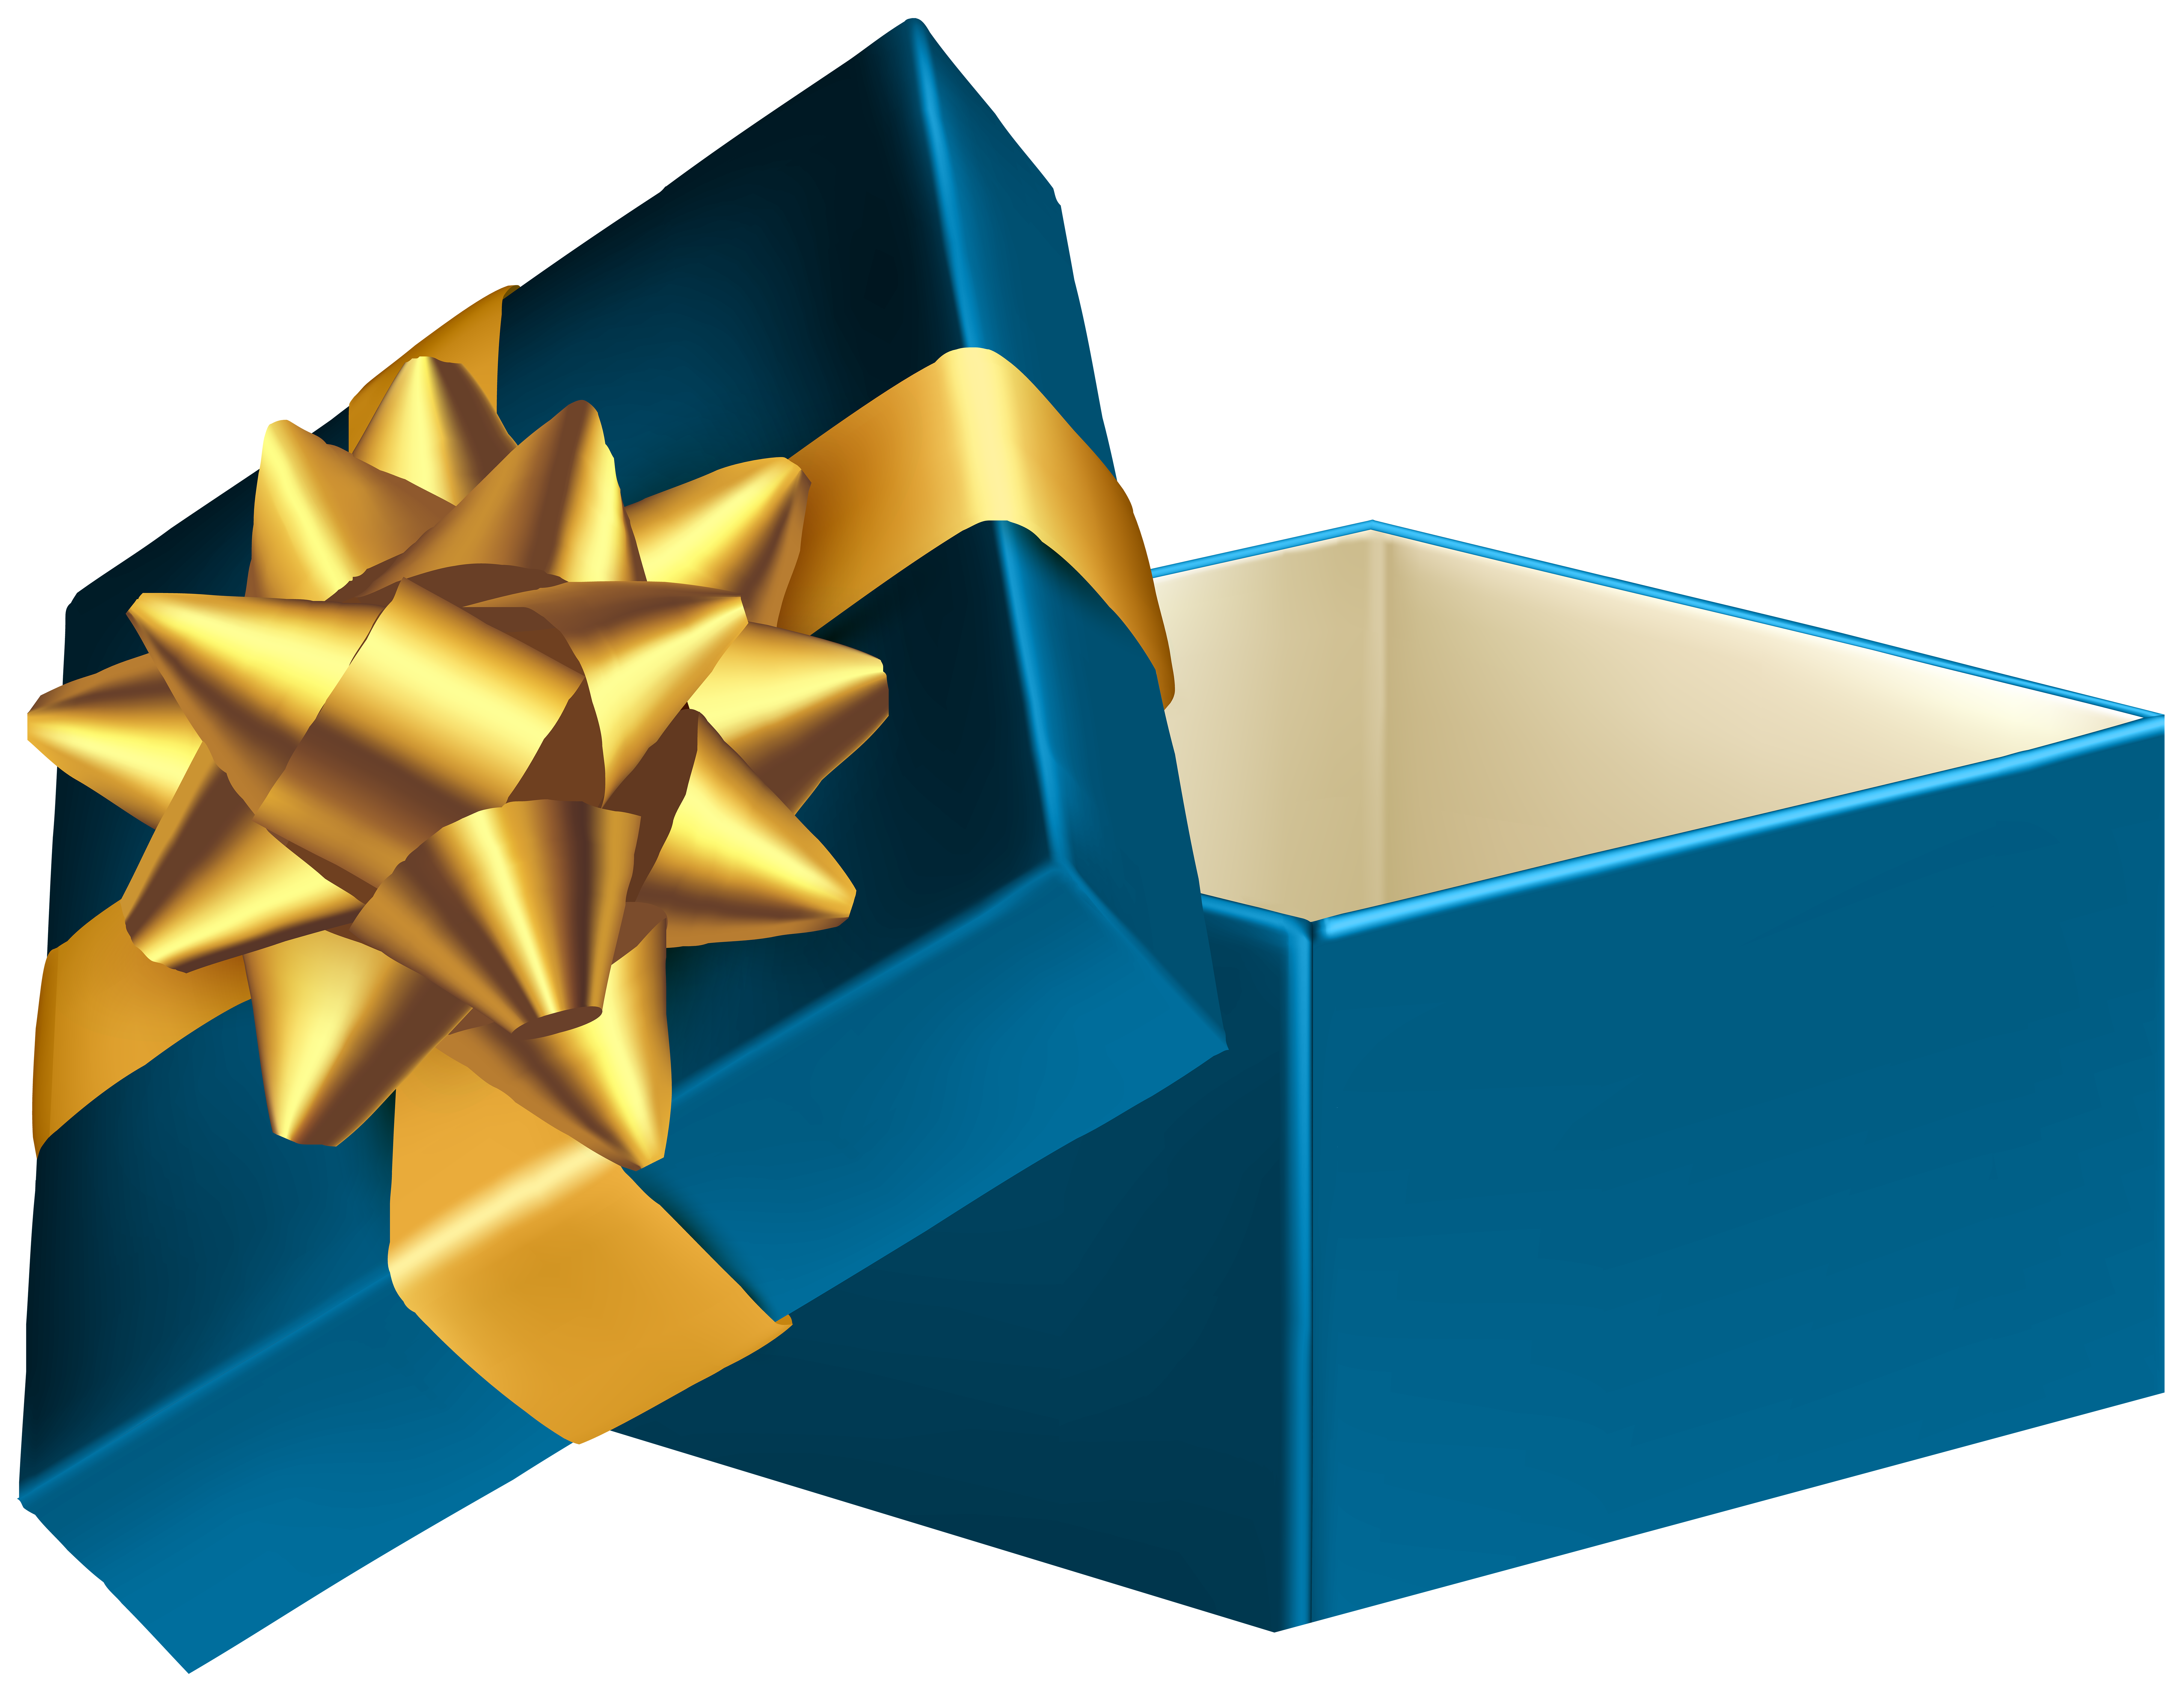 Blue gift box png. Open clip art image